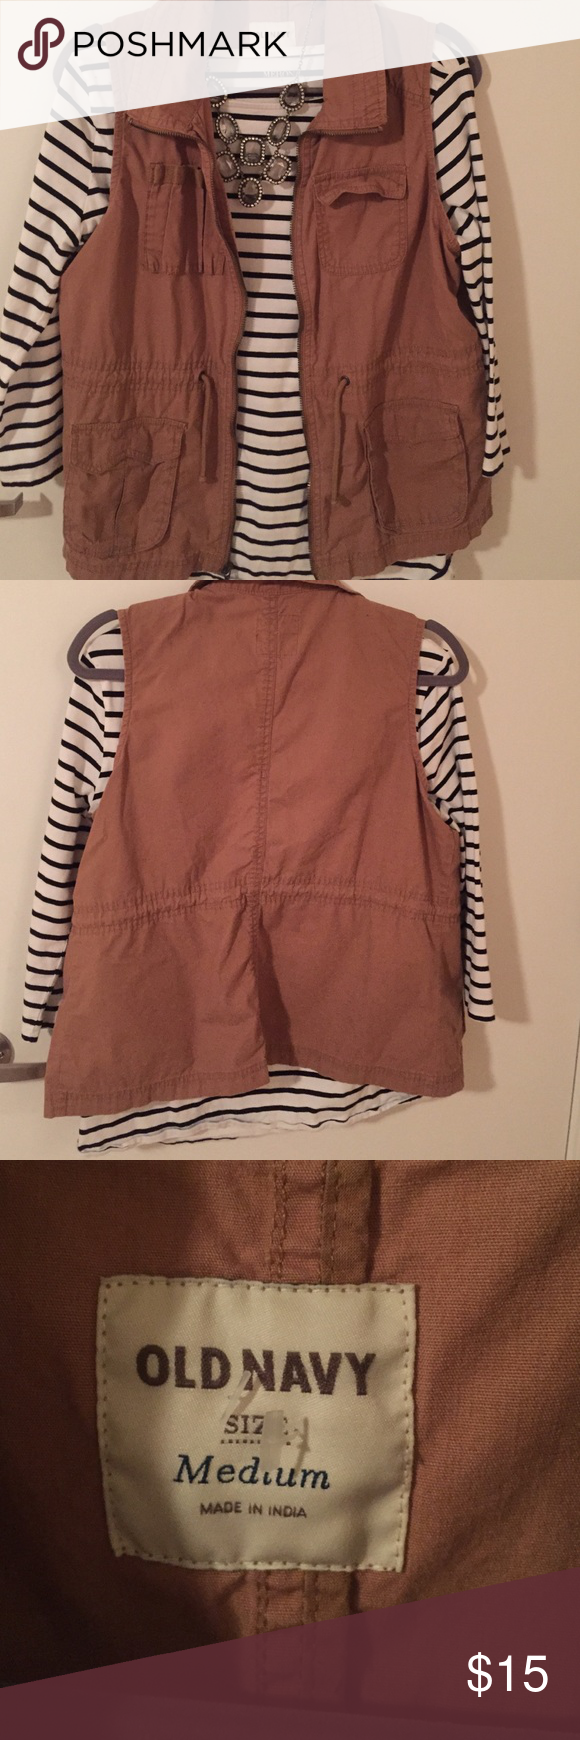 "Cargo vest Perfect layering piece! Khaki ""cargo"" vest. Great condition, no flaws. Size medium. Old navy. 100% cotton Old Navy Jackets & Coats Vests"